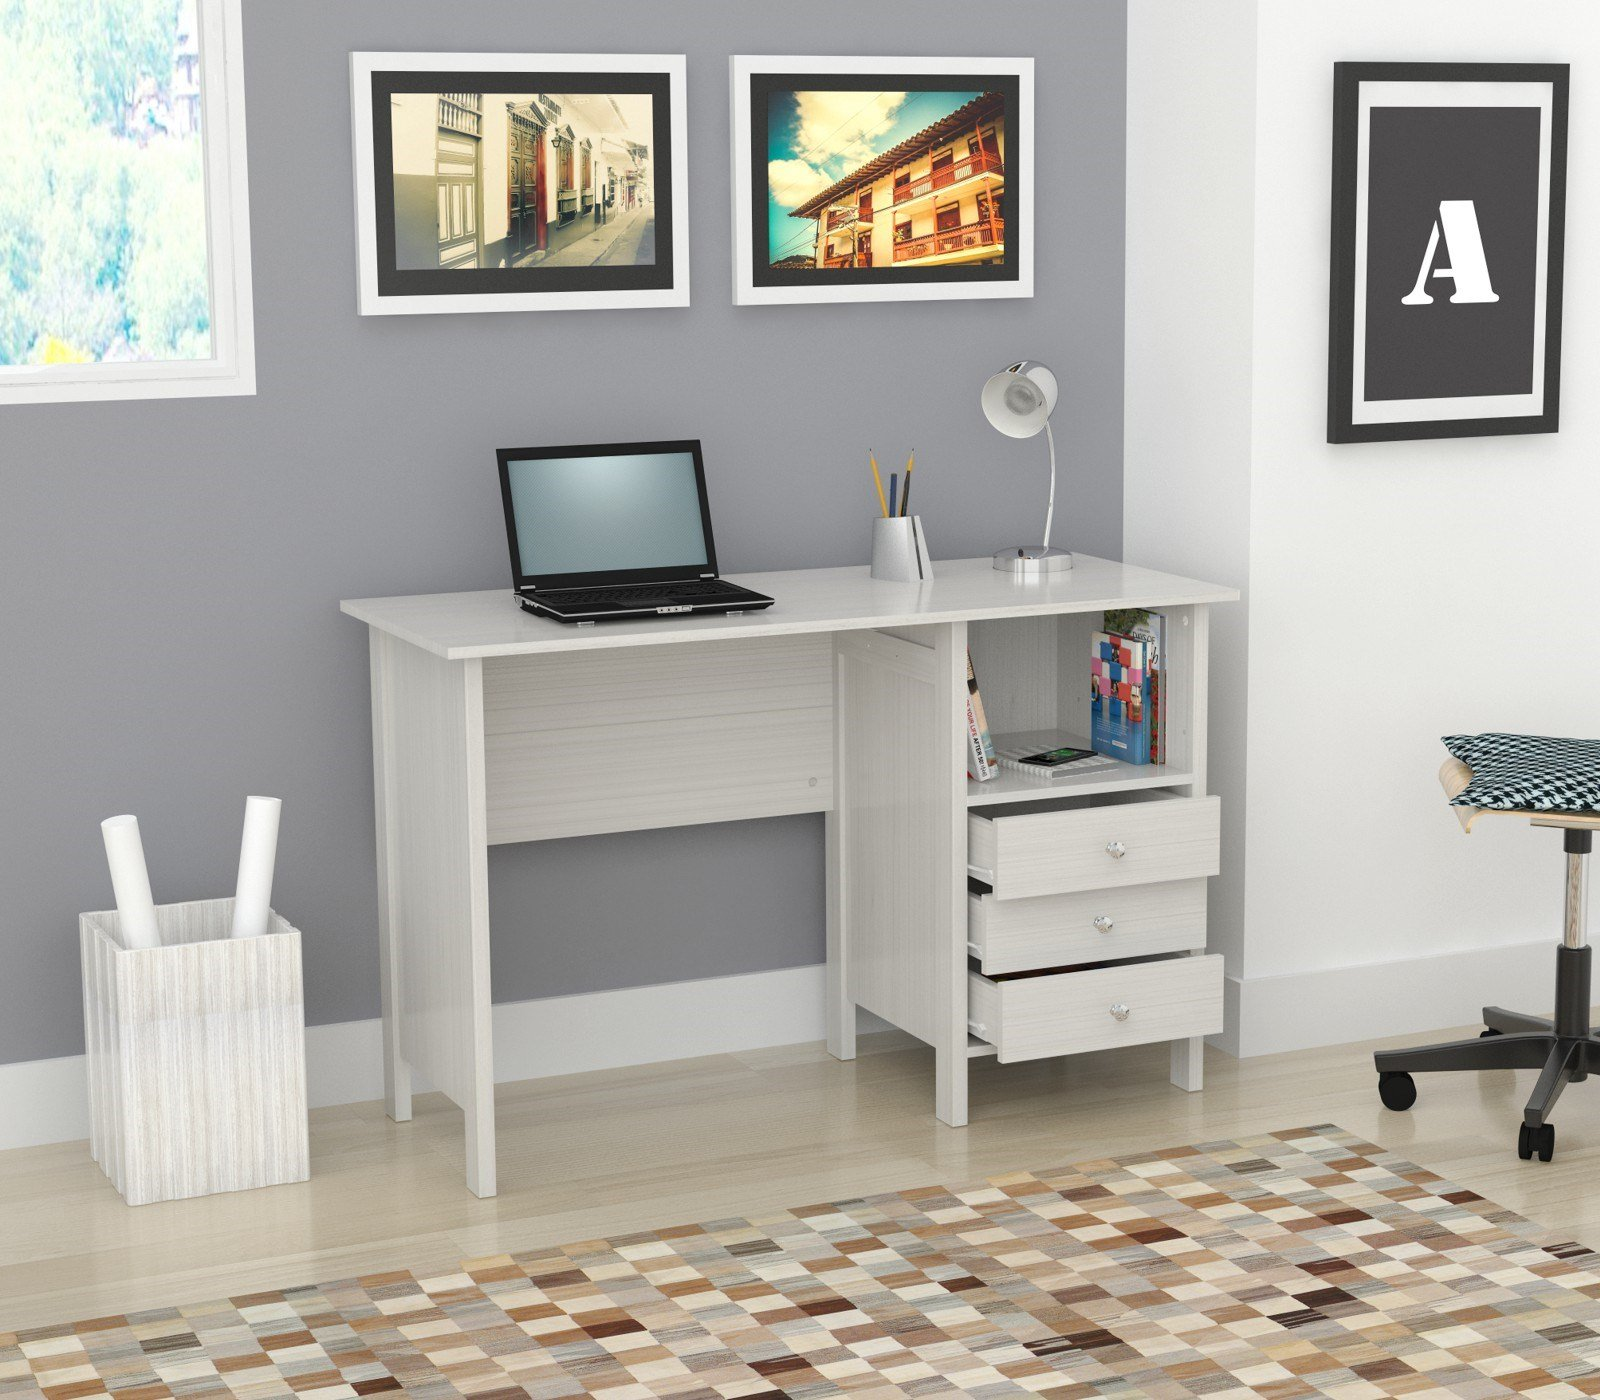 Inval ES 3303 Laura Collection Computer Desk by Inval America (Image #3)